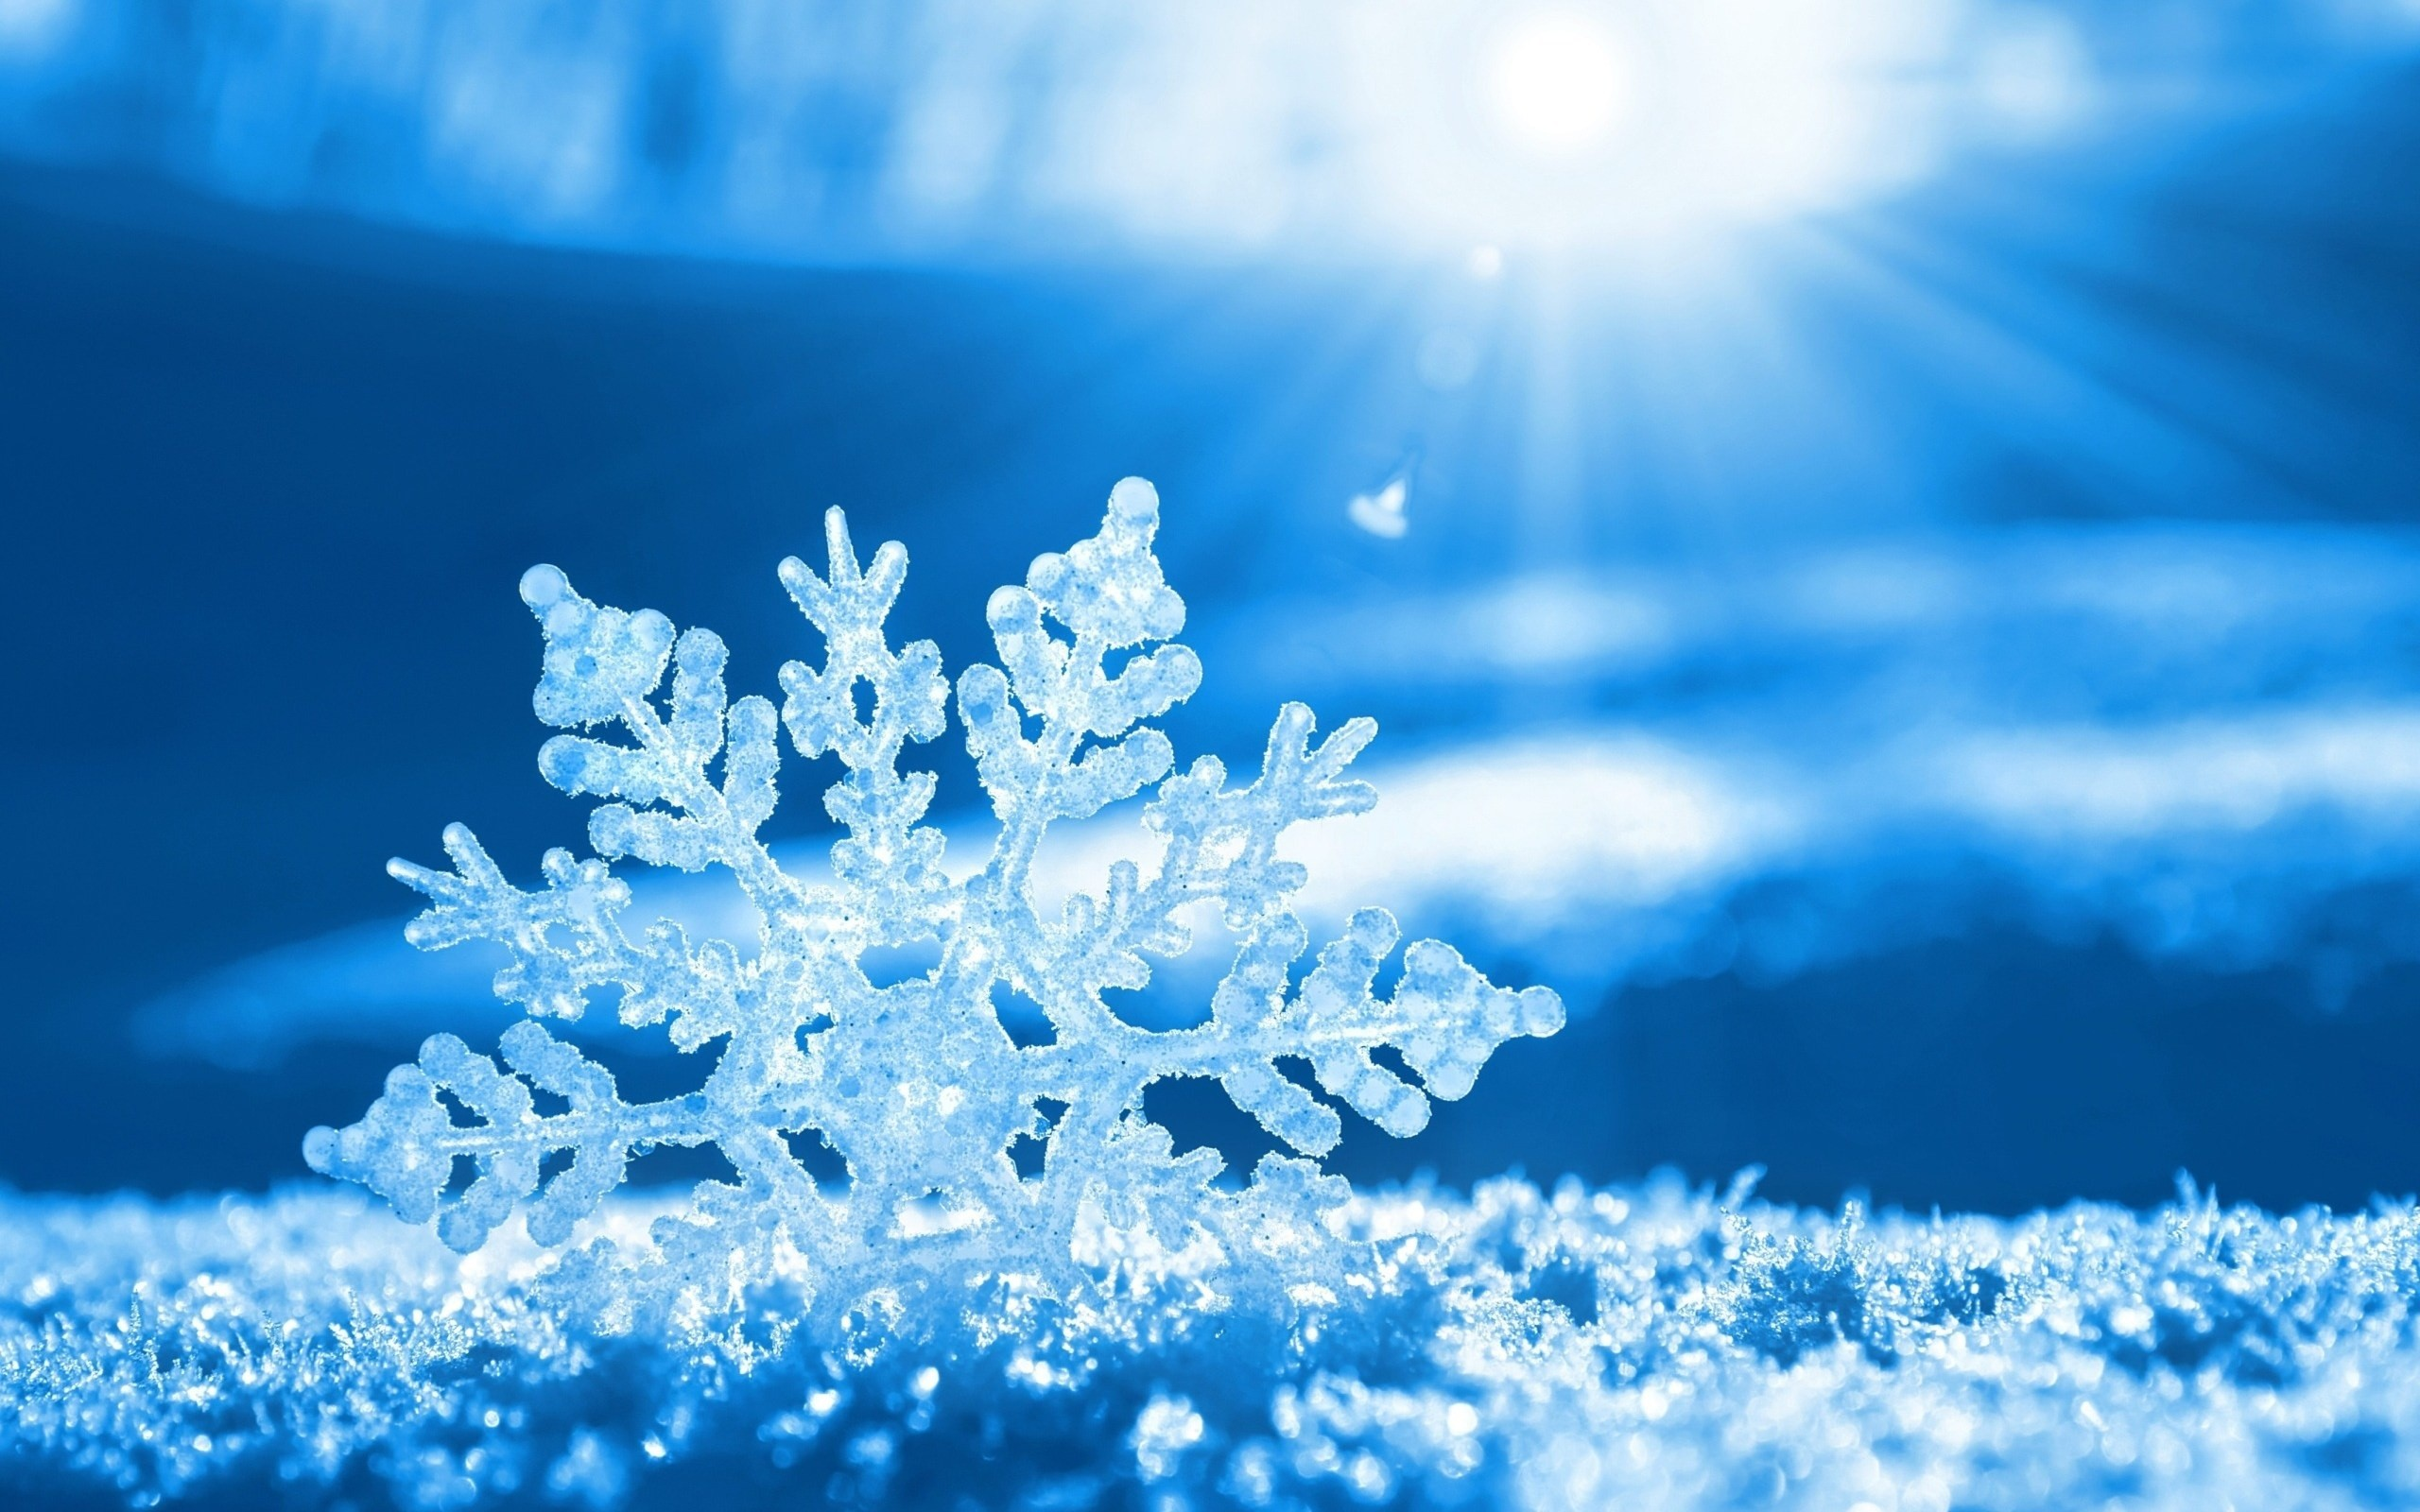 2560x1600 beautiful-snowflake-wallpaper-15536-16213-hd-wallpapers.jpg